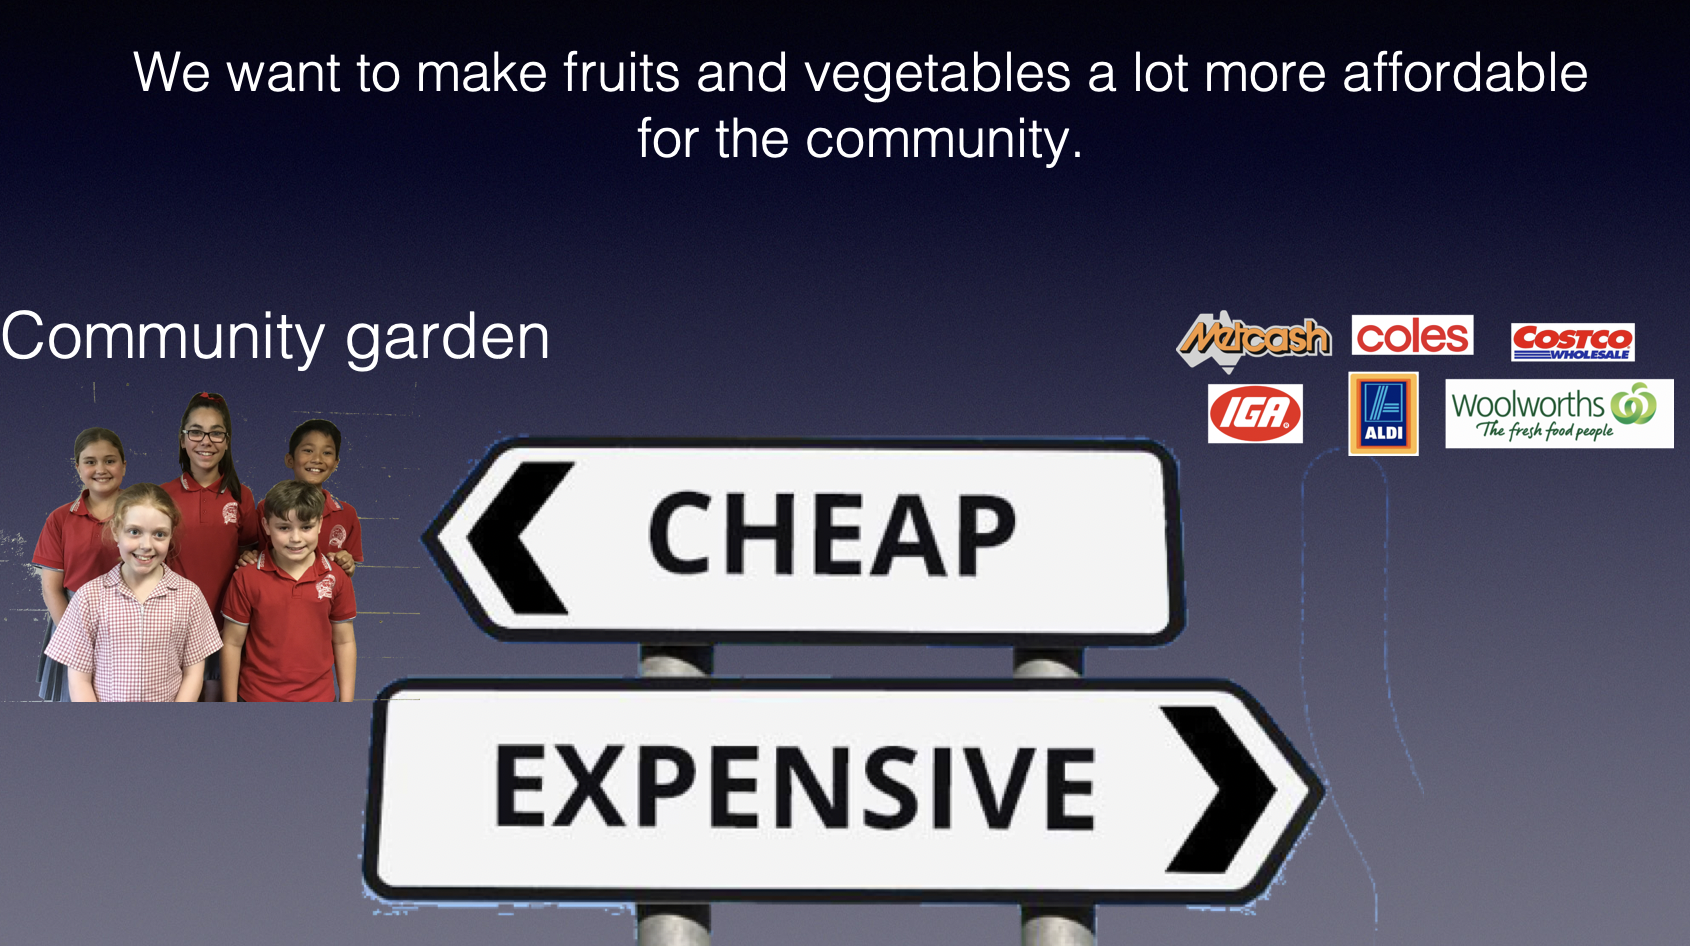 The problem statement - a lack of affordable fruit and vegetables for the local community.